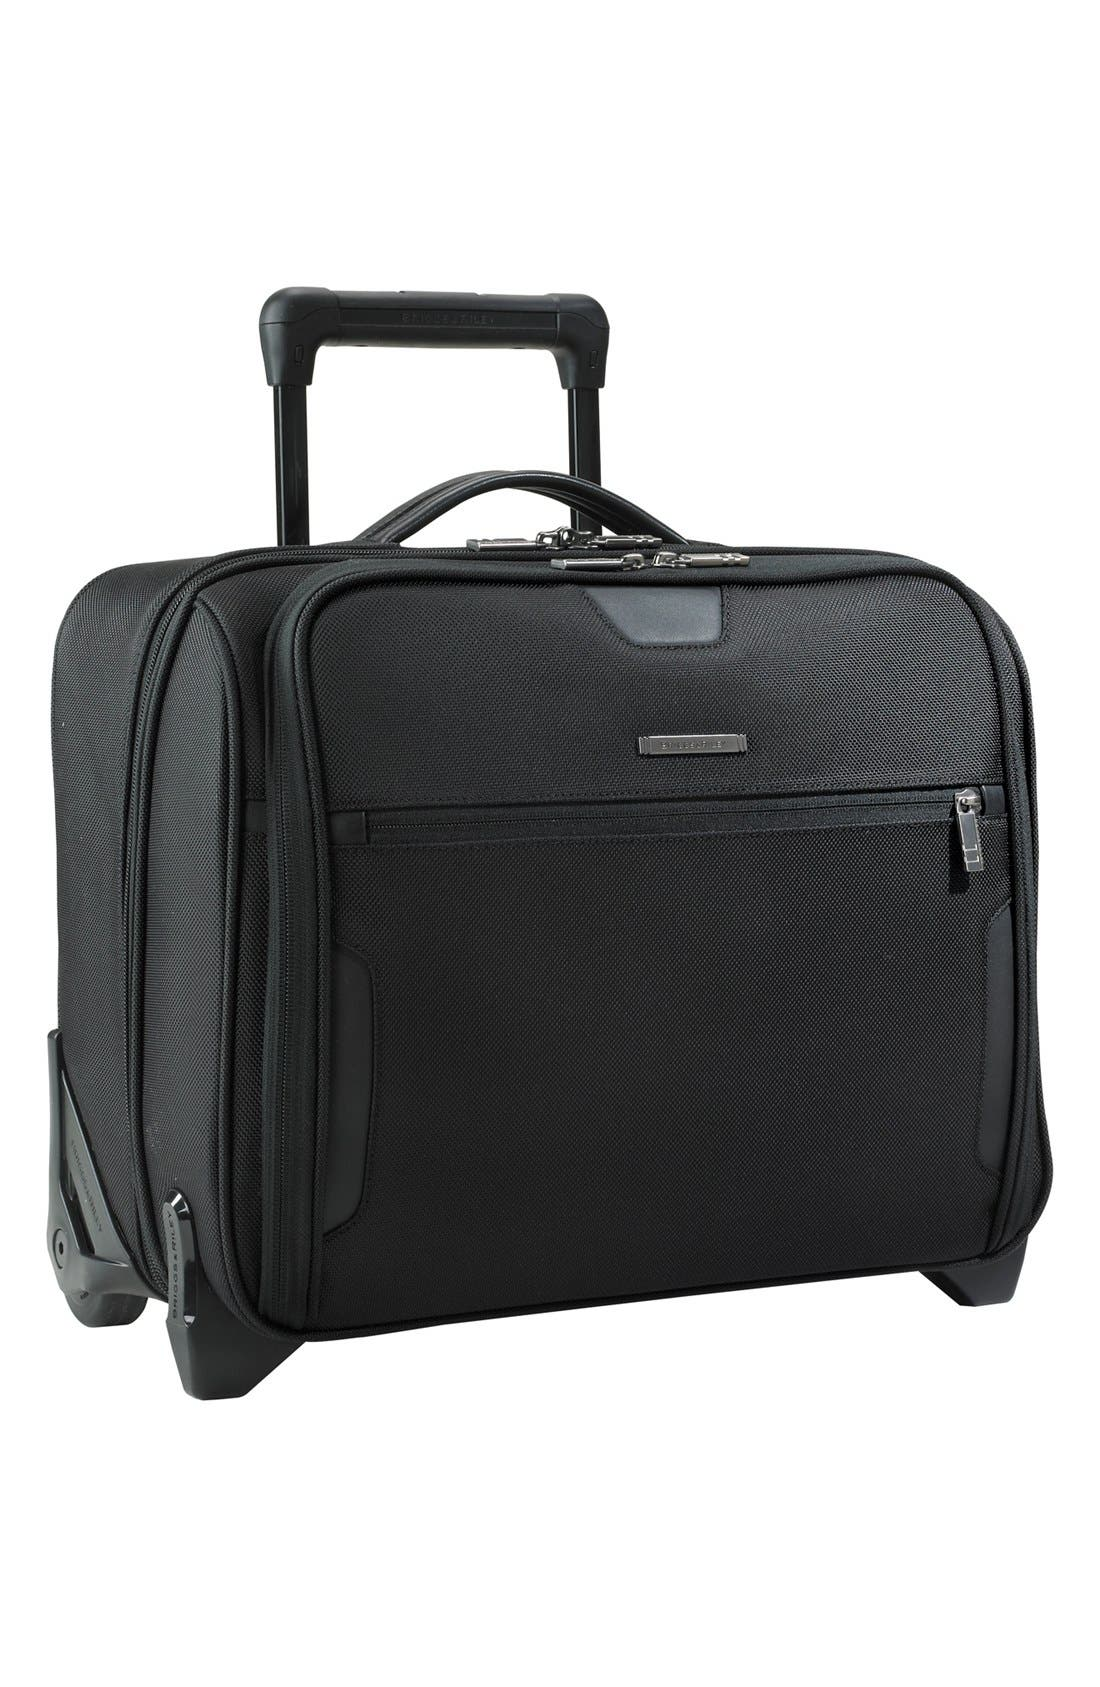 Alternate Image 1 Selected - Briggs & Riley 'Medium Slim' Rolling Ballistic Nylon Briefcase (16 Inch)